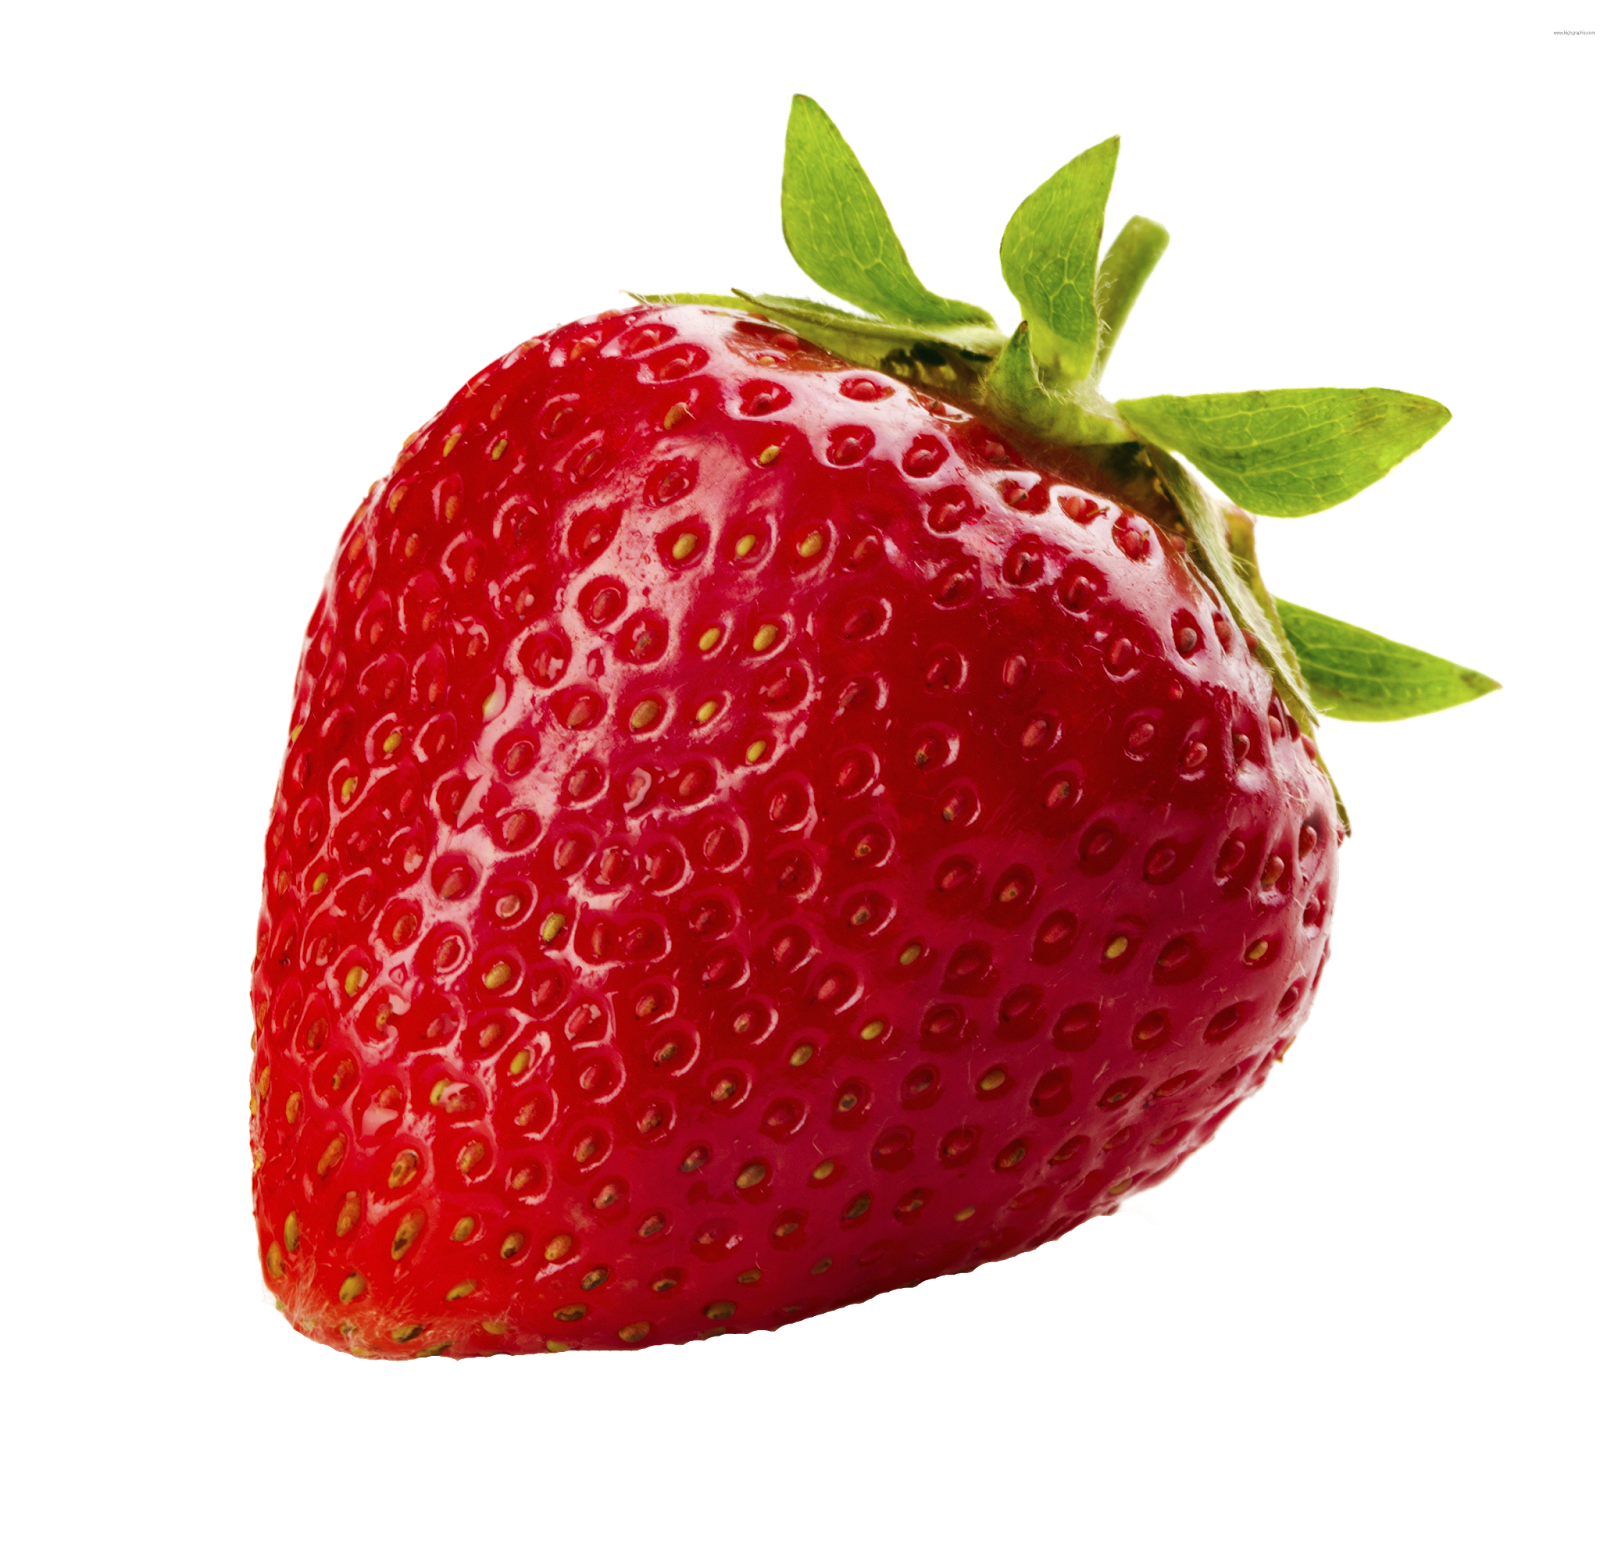 Strawberries clipart strawberry leave. Png transparent images all